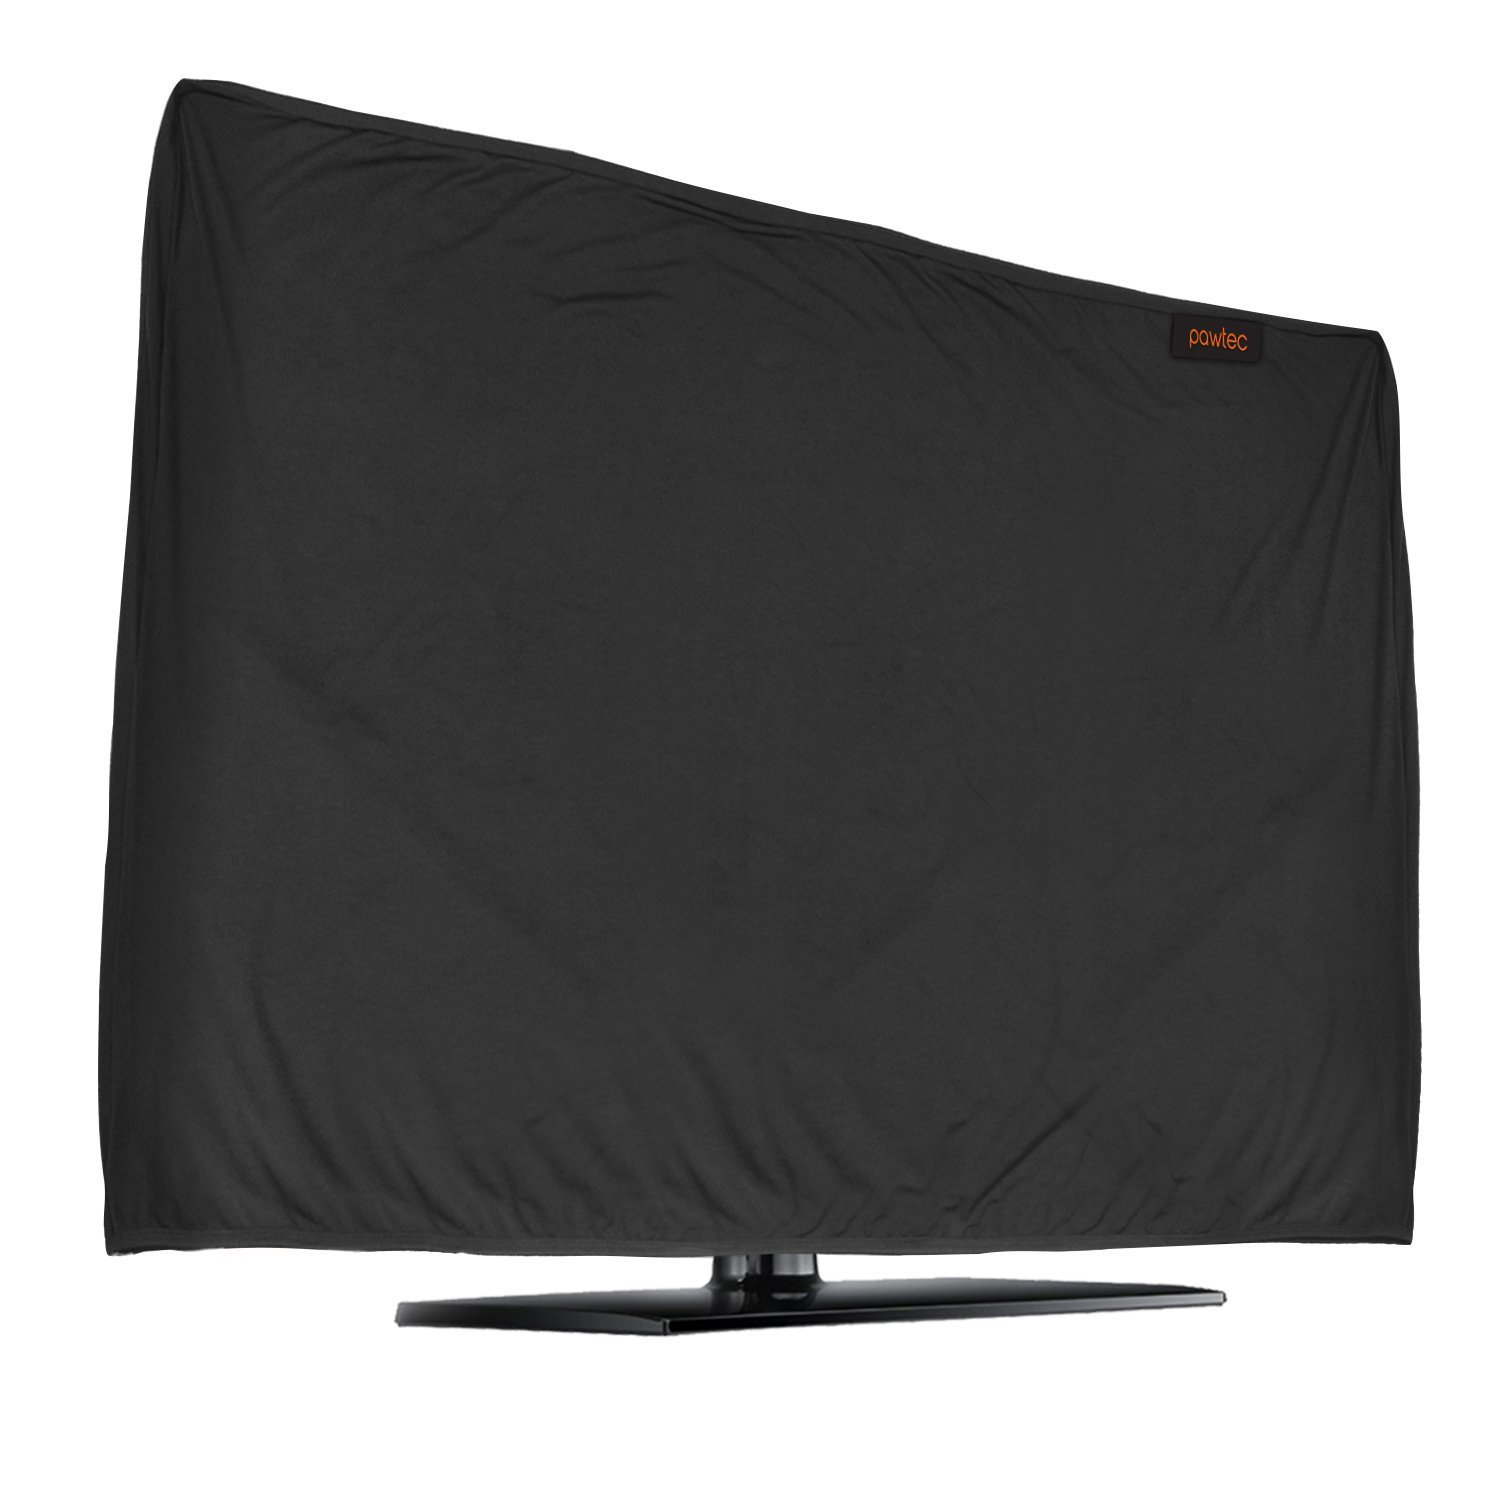 Lightweight Flat Screen TV Cover - Full Body Stretchable Lycra Protection Sleeve - Fits 47-50'' LED, OLED, LCD, and Plasma Televisions (47-50 inch) by Pawtec